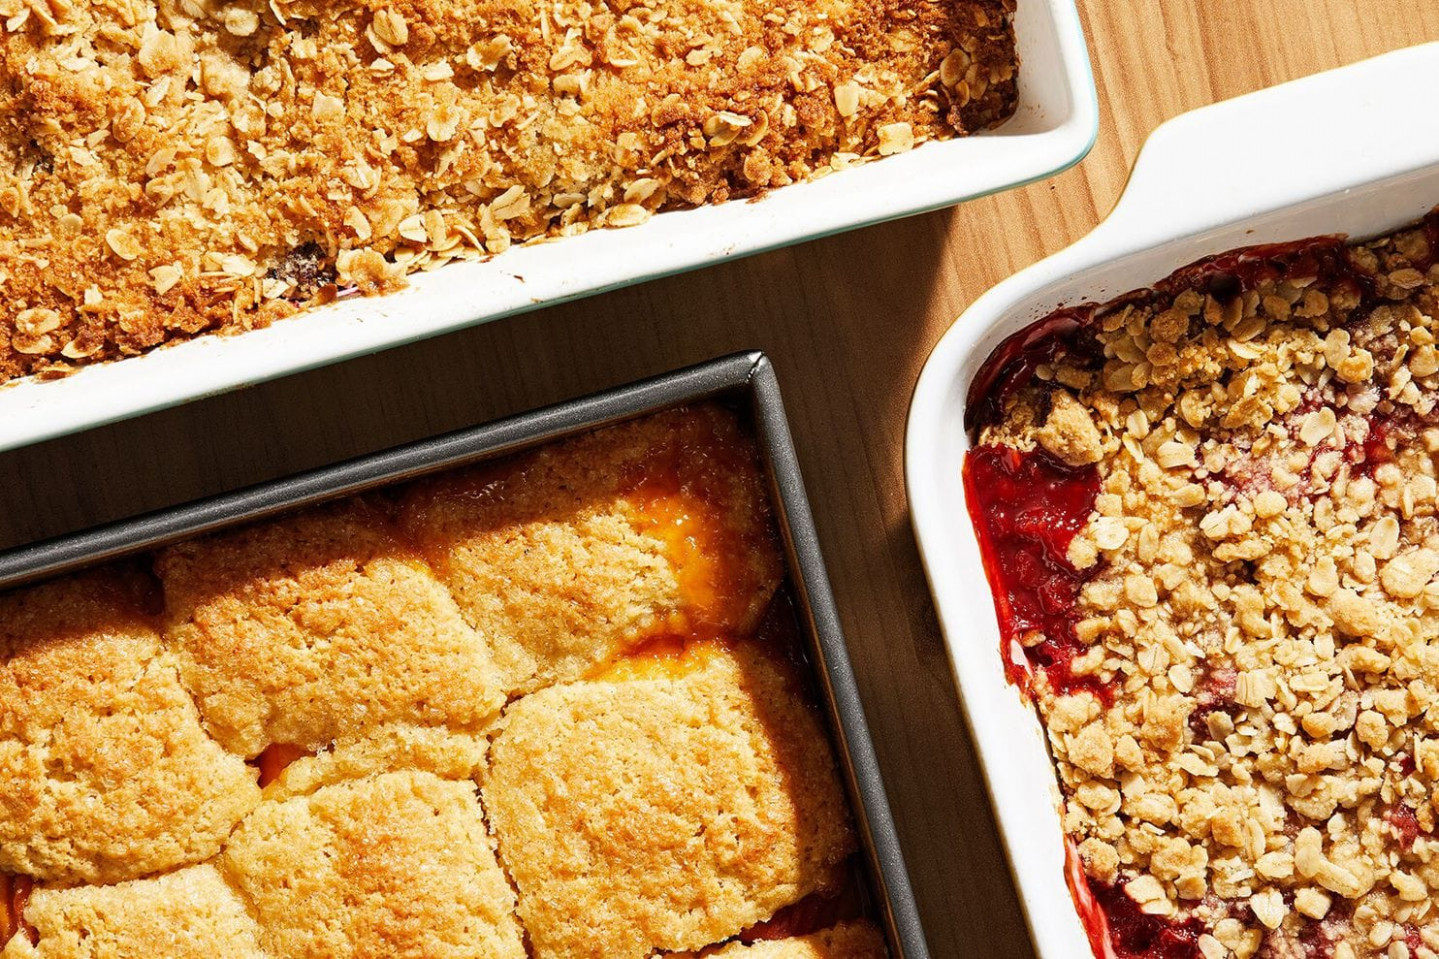 With Less Sugar, These Cobblers, Crisps And Crumbles Let ..